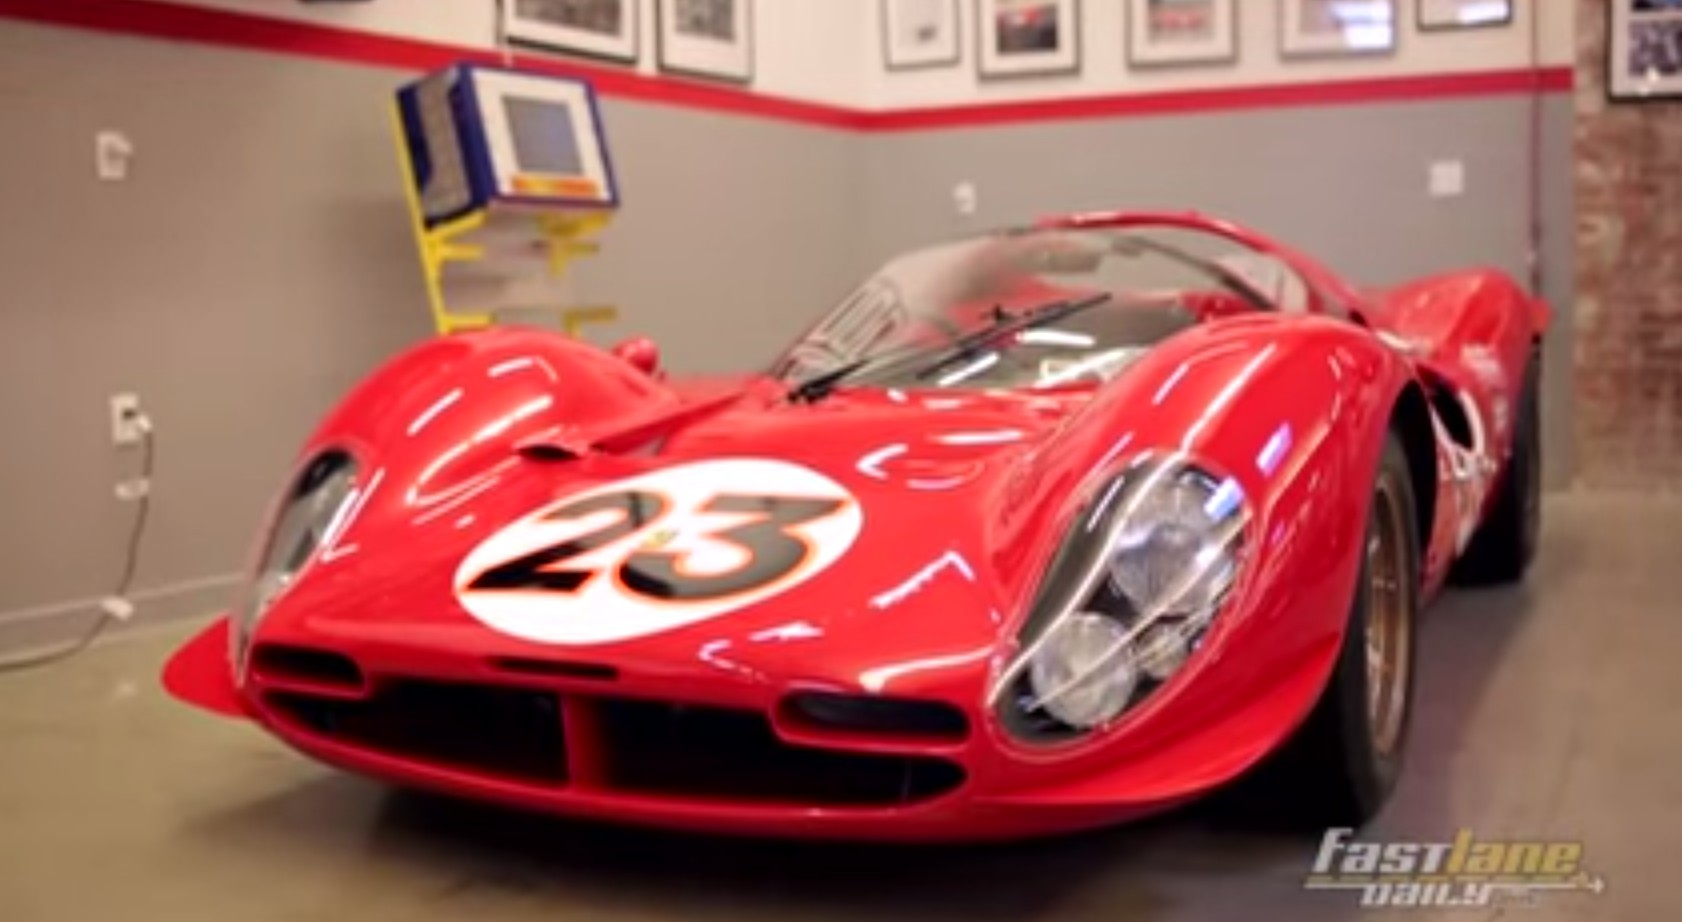 james glickenhaus  insiders view   amazing garage video